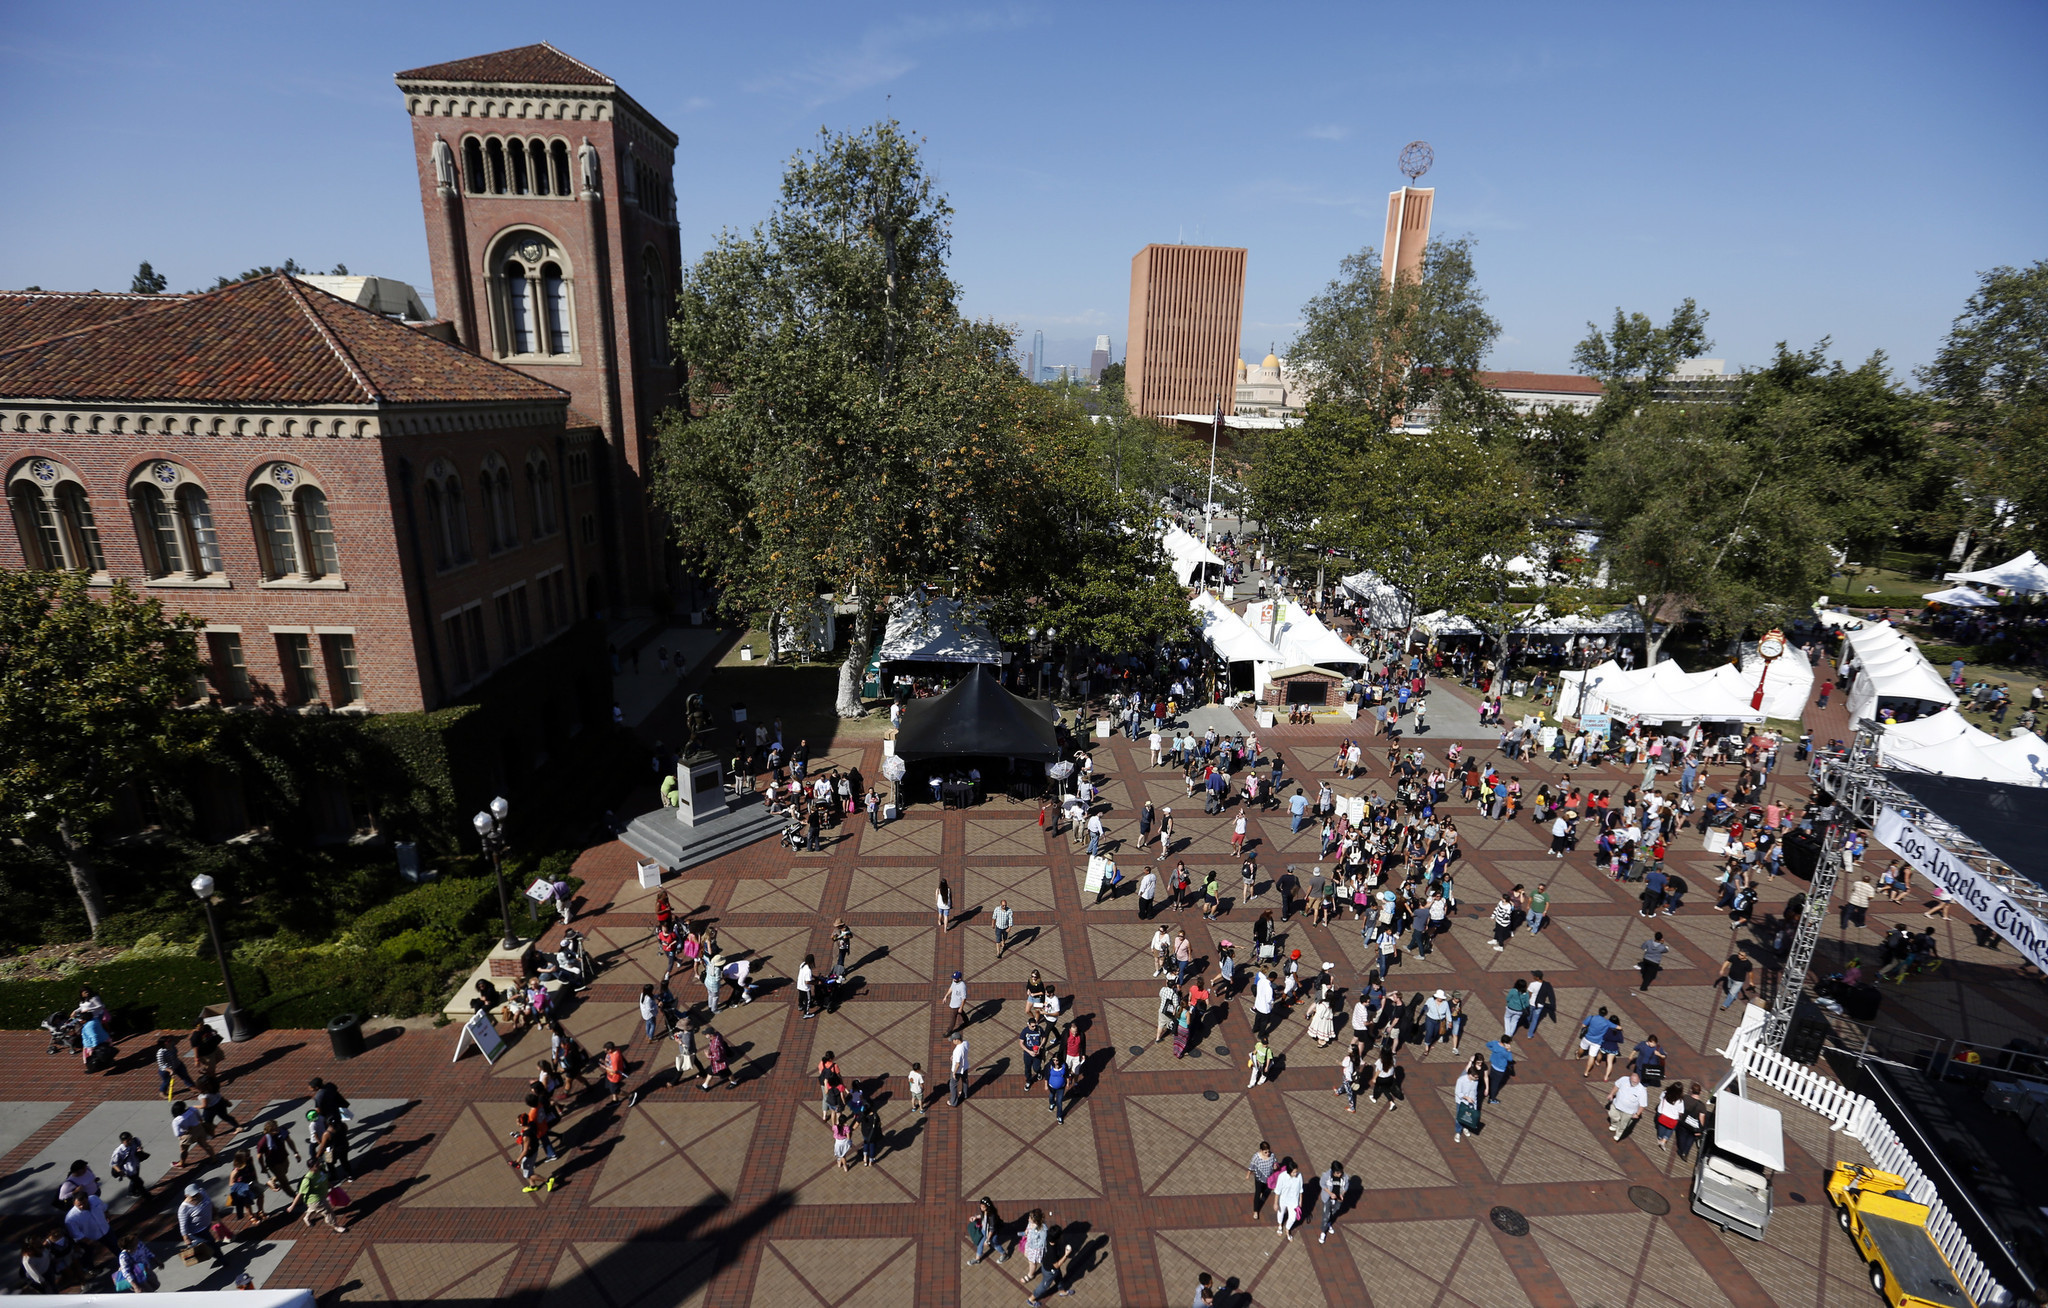 The USC campus is seen in a file photo. (Credit: Francine Orr / Los Angeles Times)